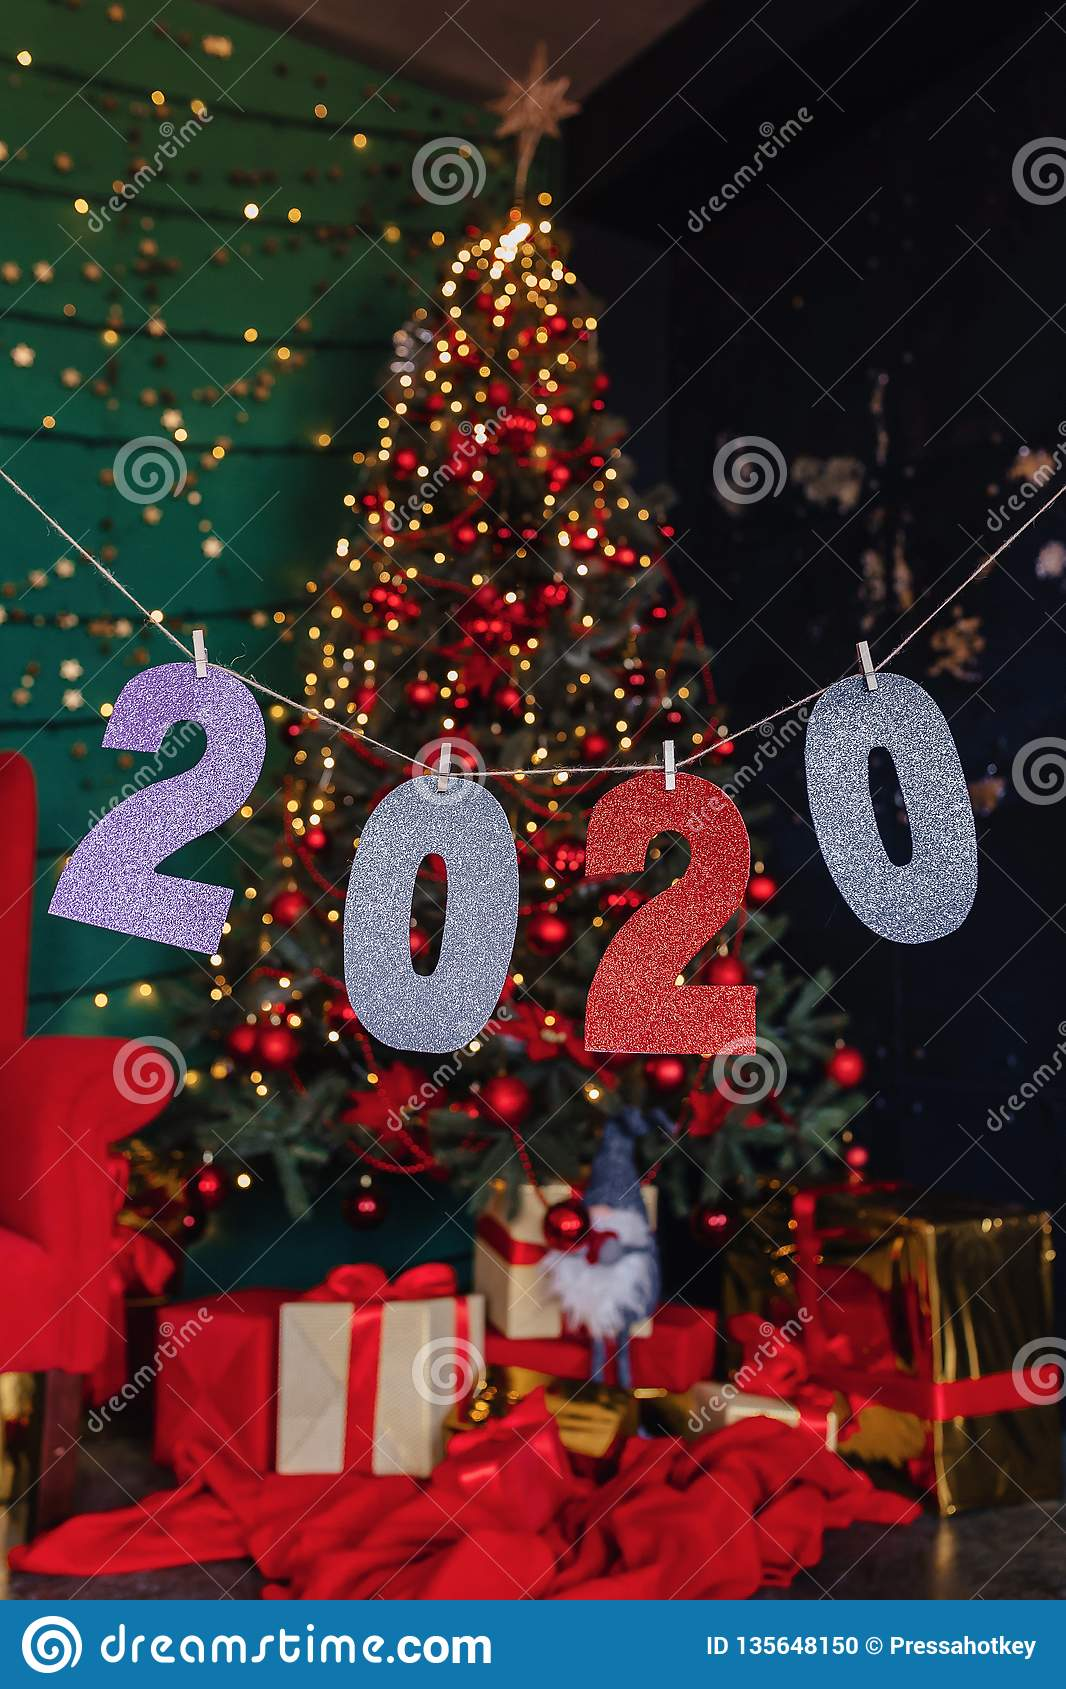 2020 Numbers New Year Party, Christmas Tree Stock Photo